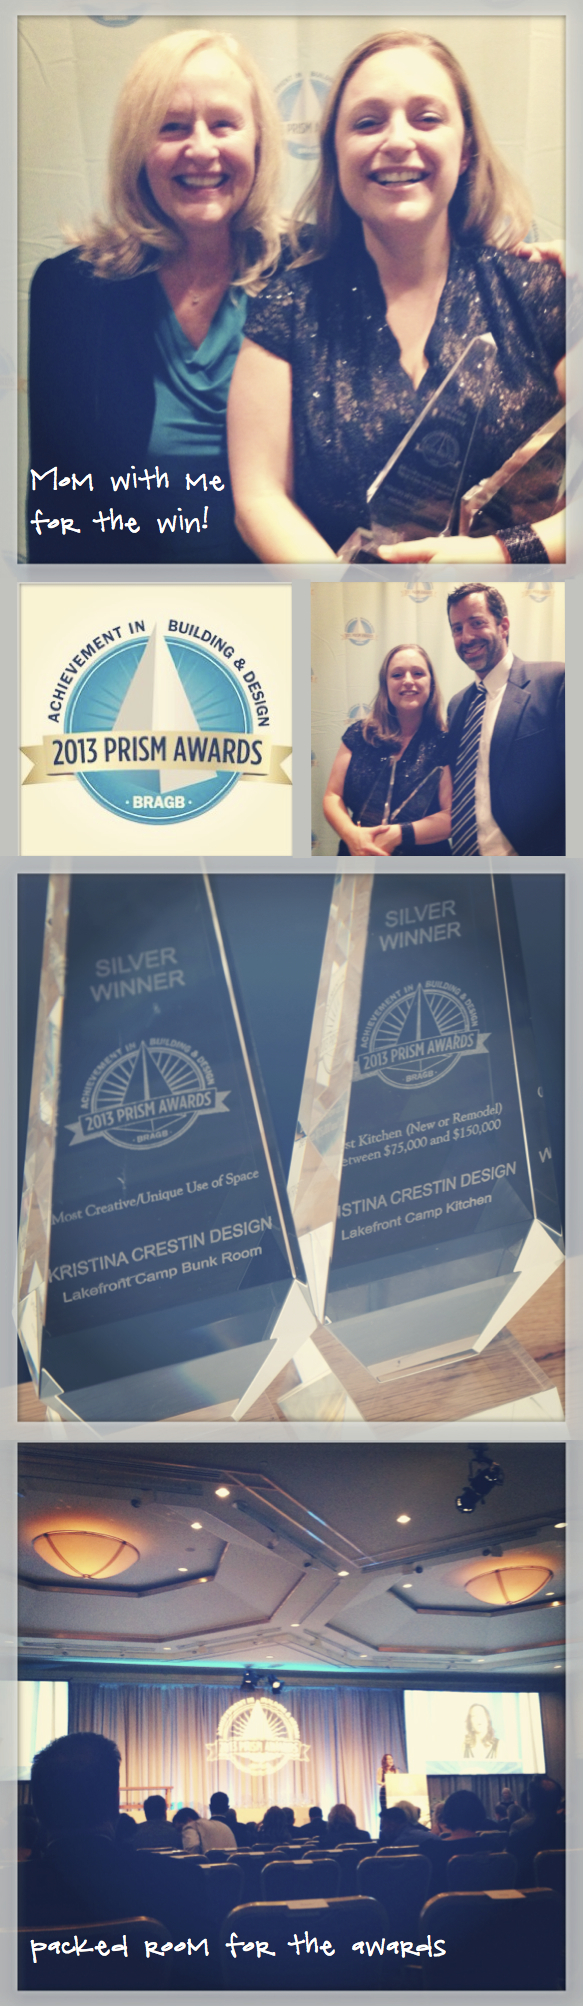 Kristina Crestin Design_Prism Awards